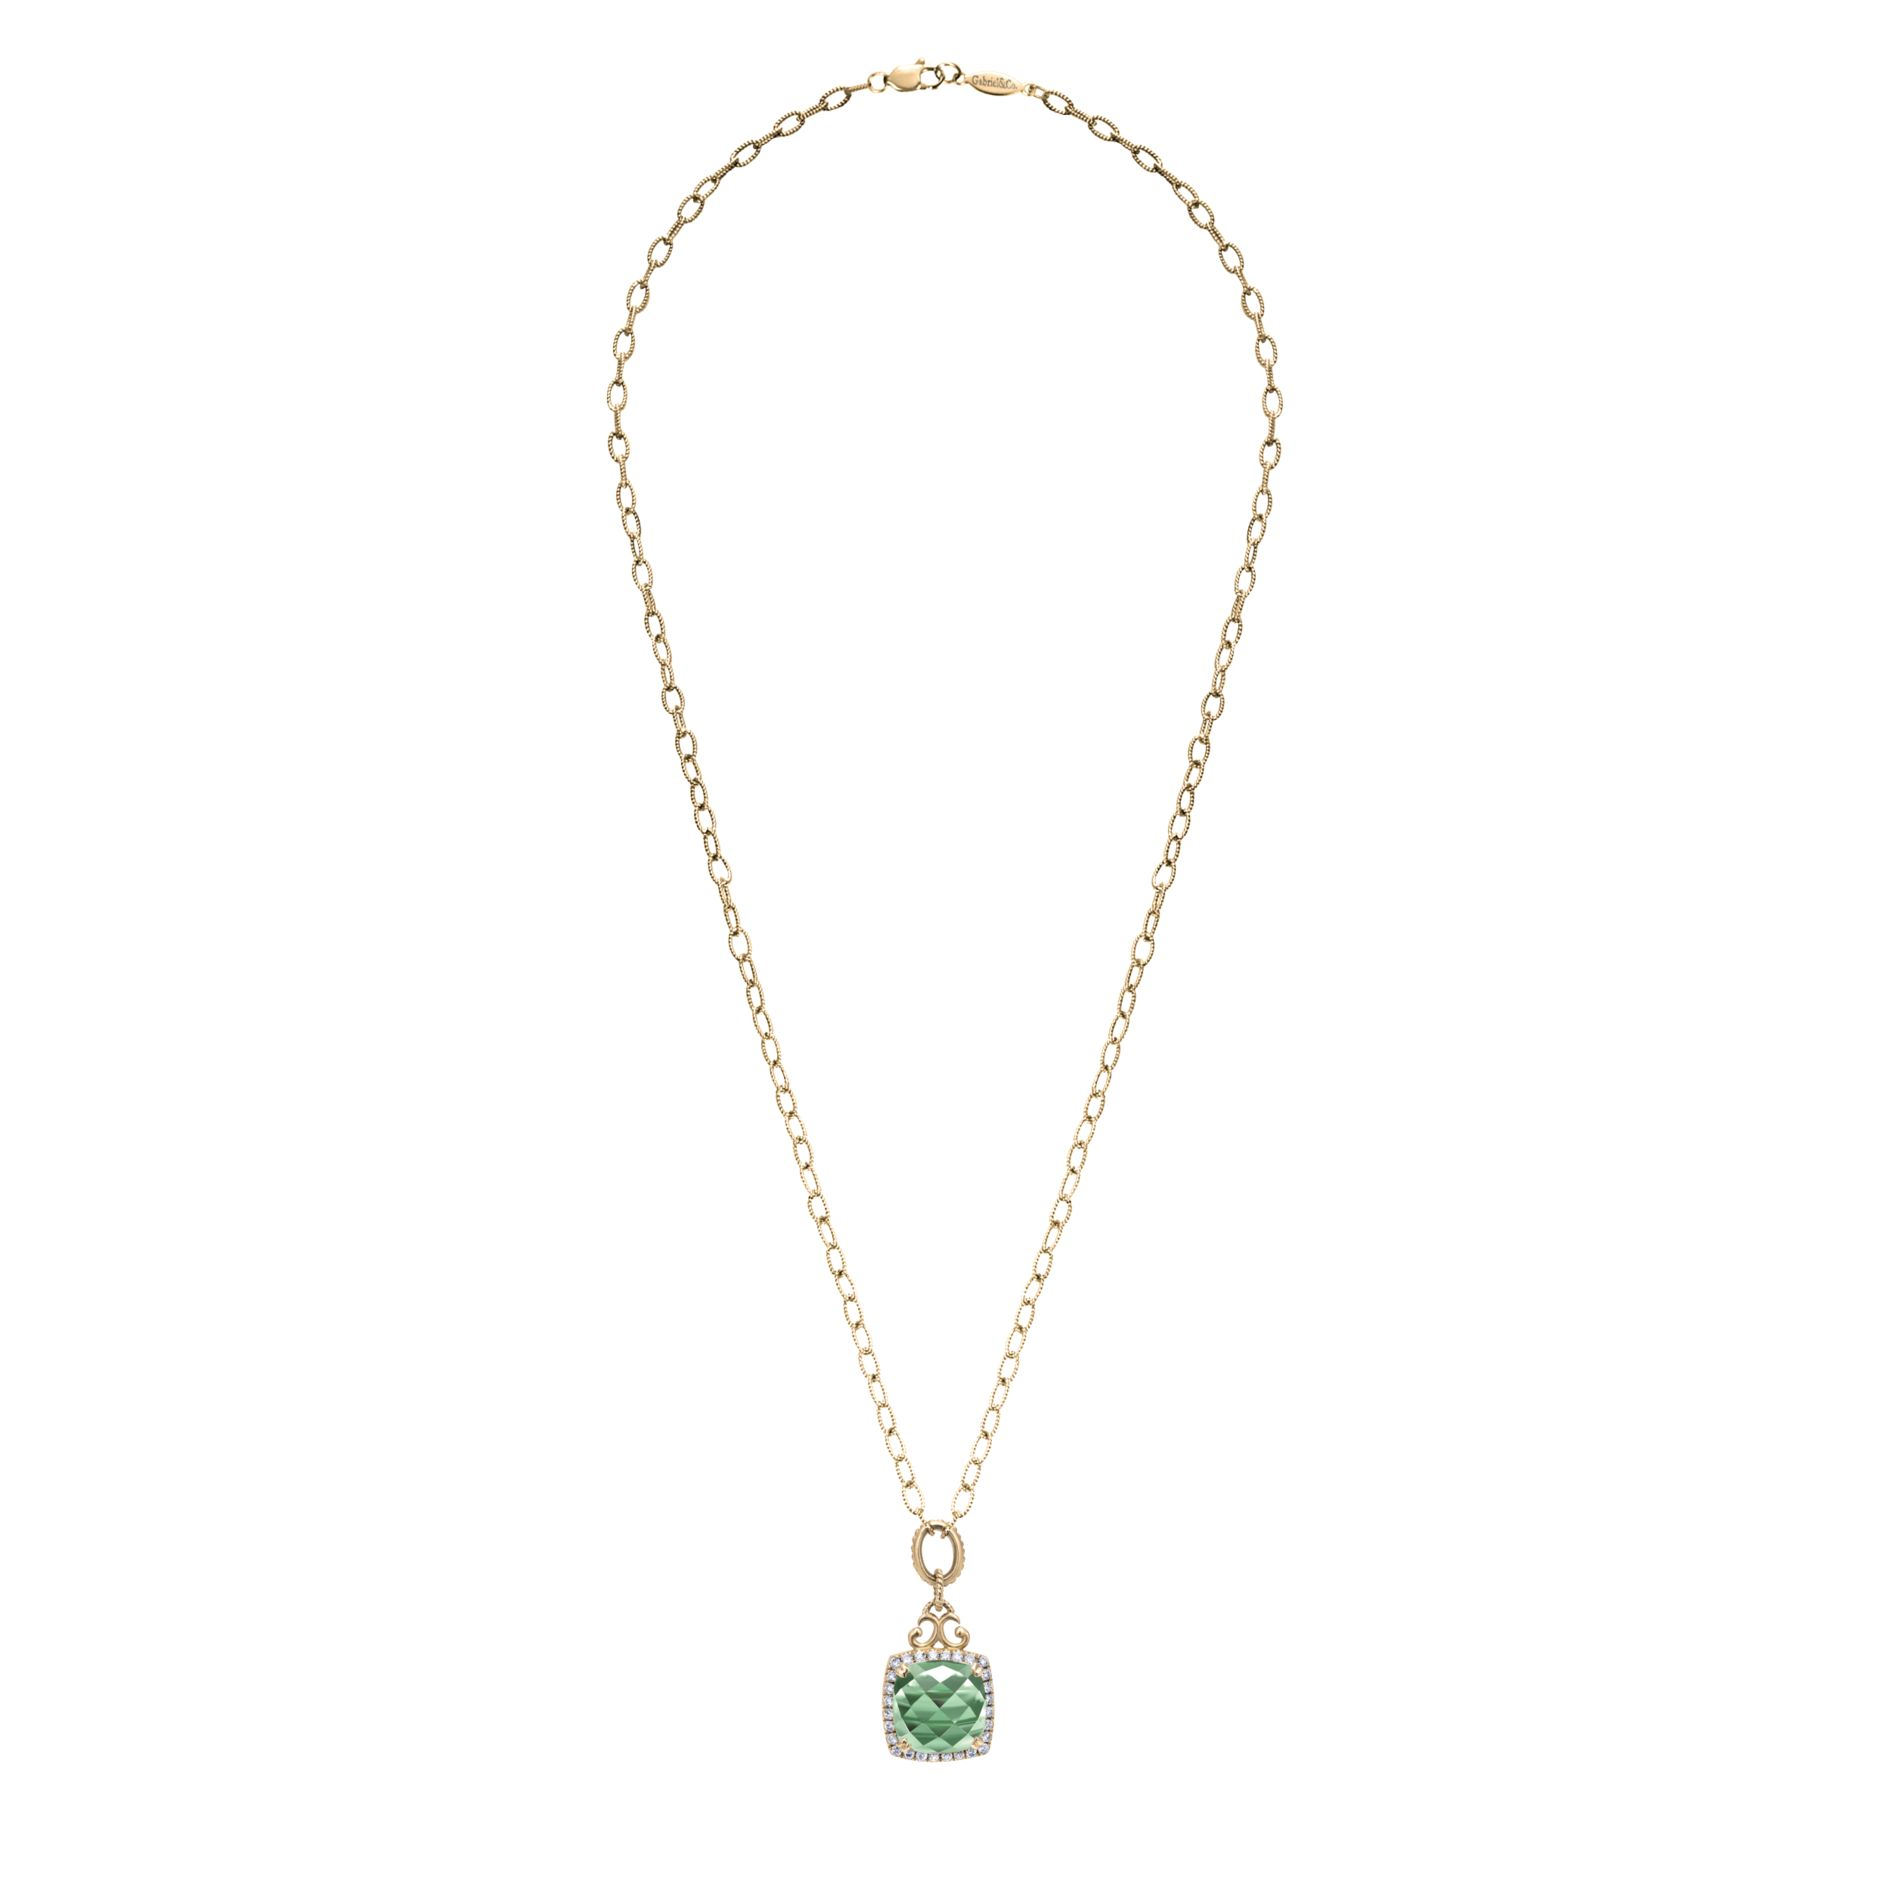 Necklaces - YELLOW GOLD FASHION DIAMOND GREEN AMETHYST NECKLACE - image #2